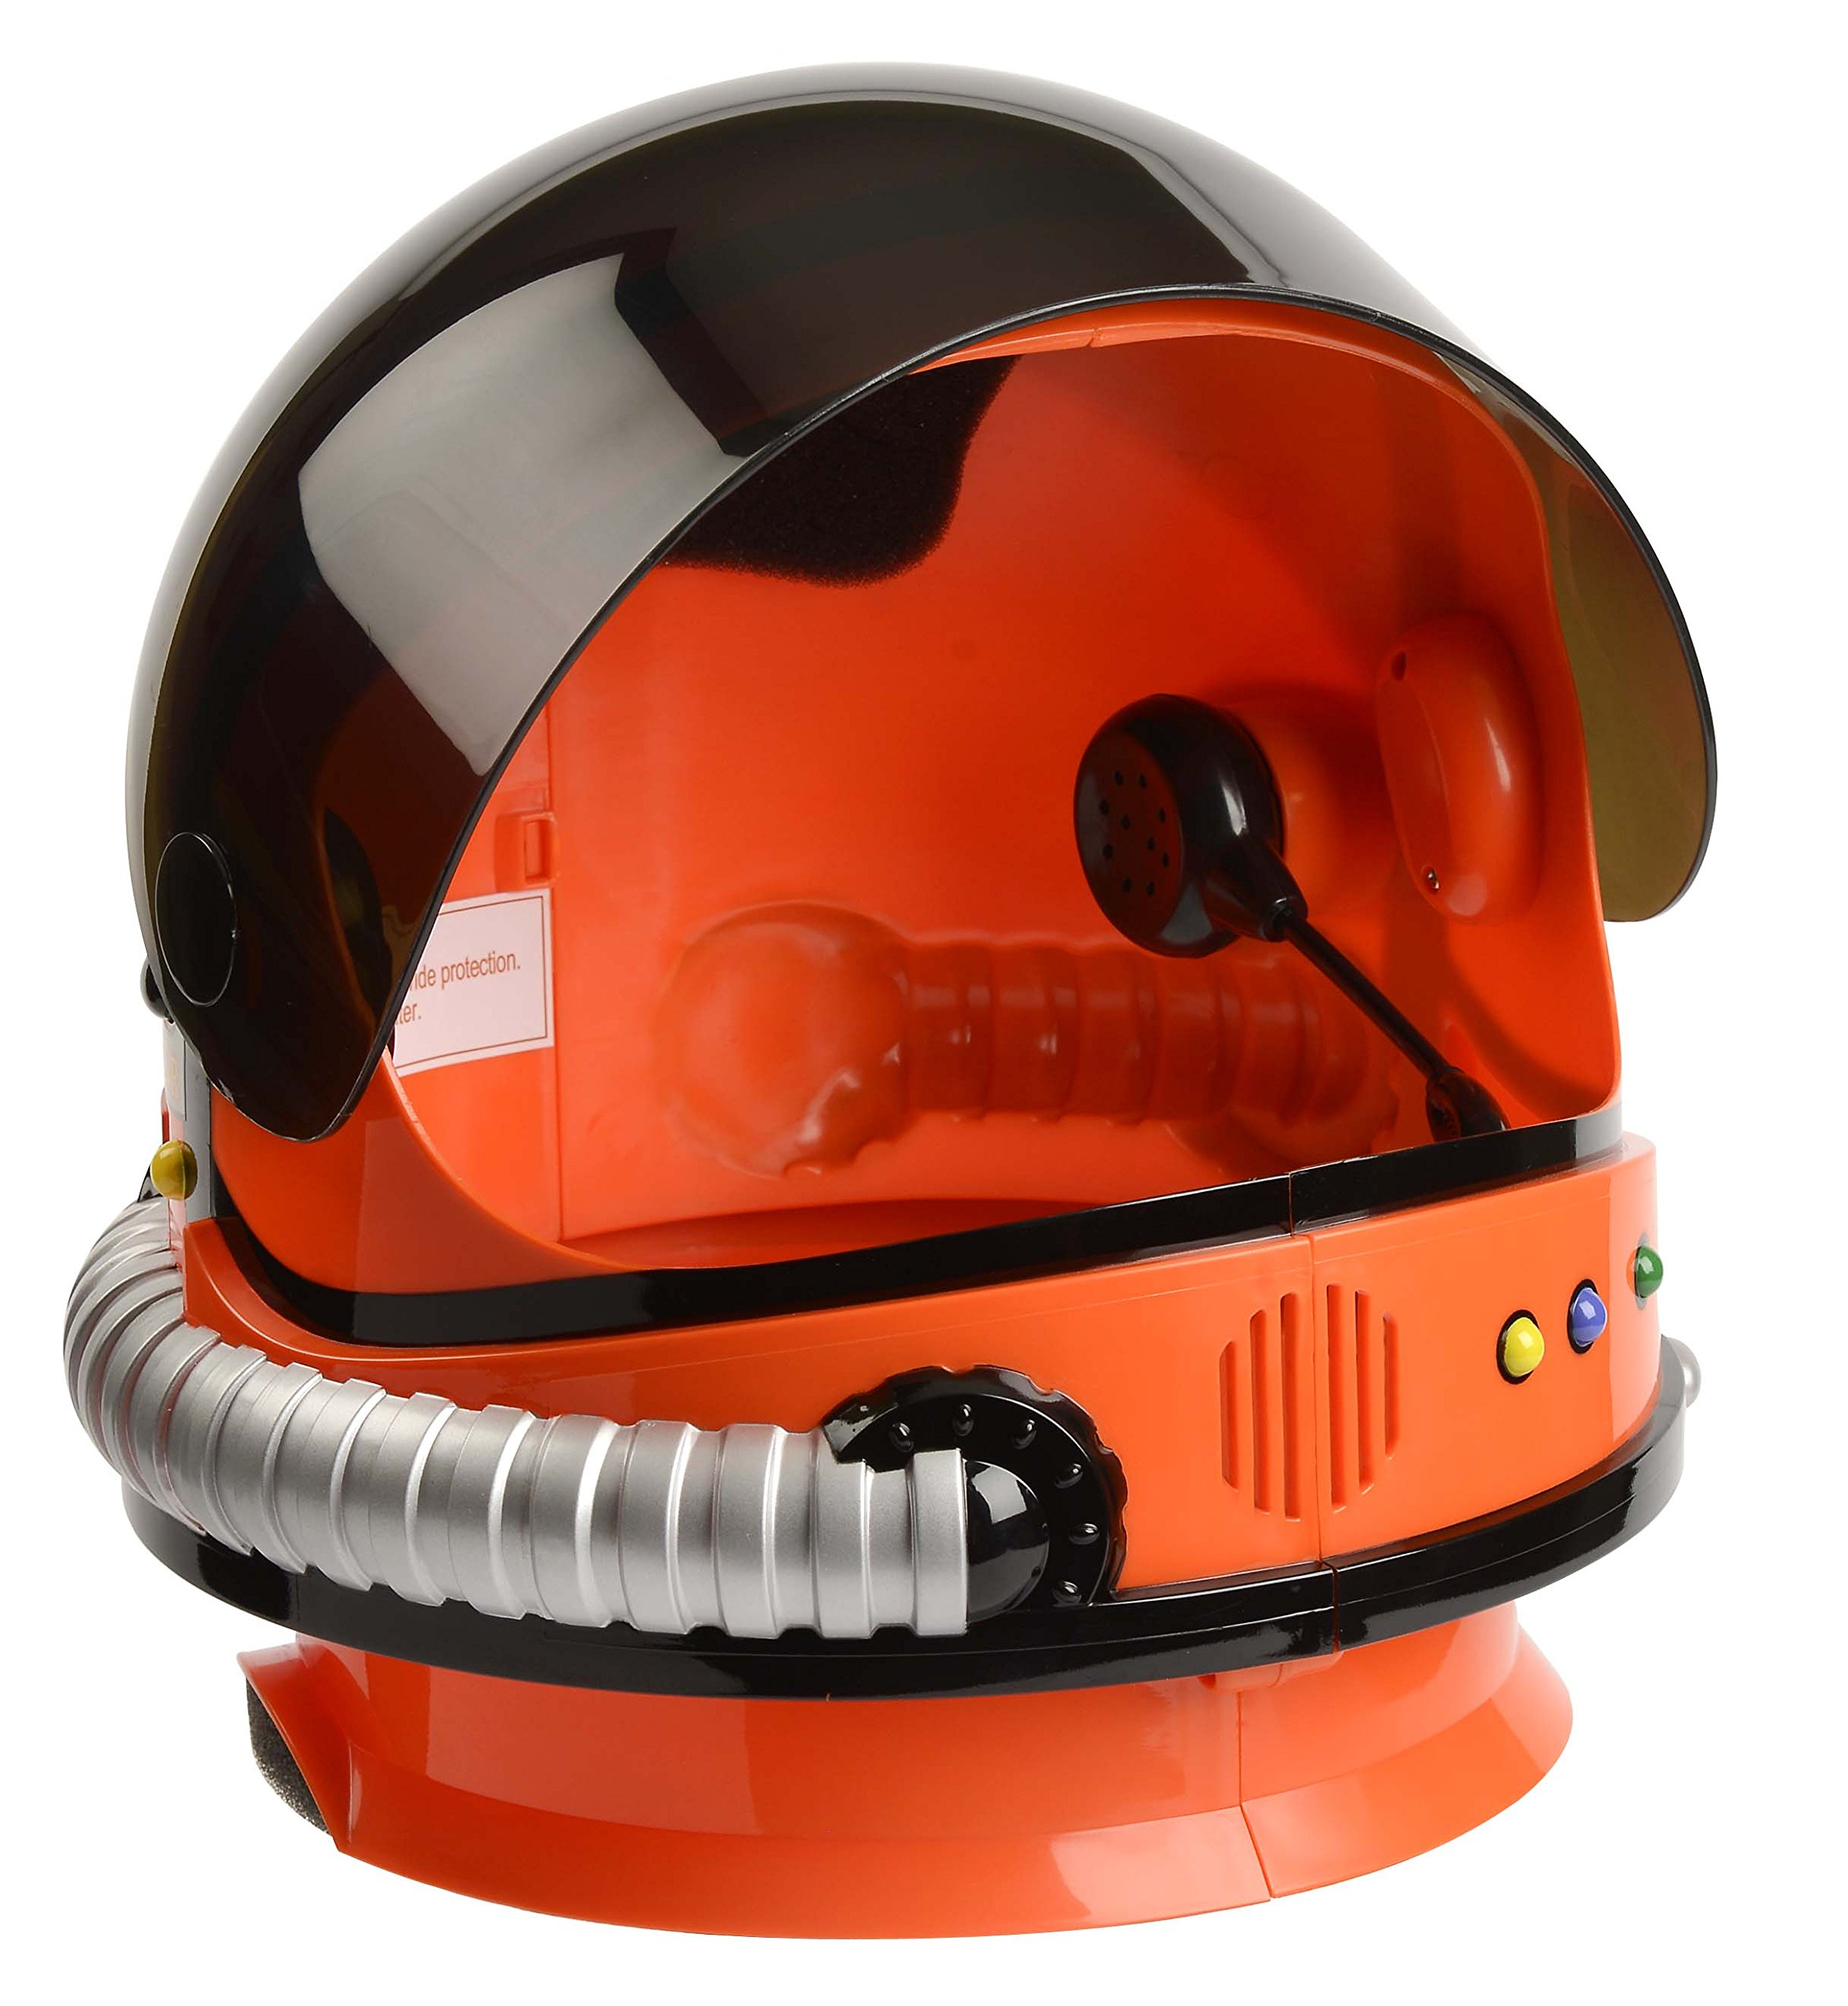 Aeromax Jr. Astronaut Helmet with Sounds and Retractable Visor, Orange